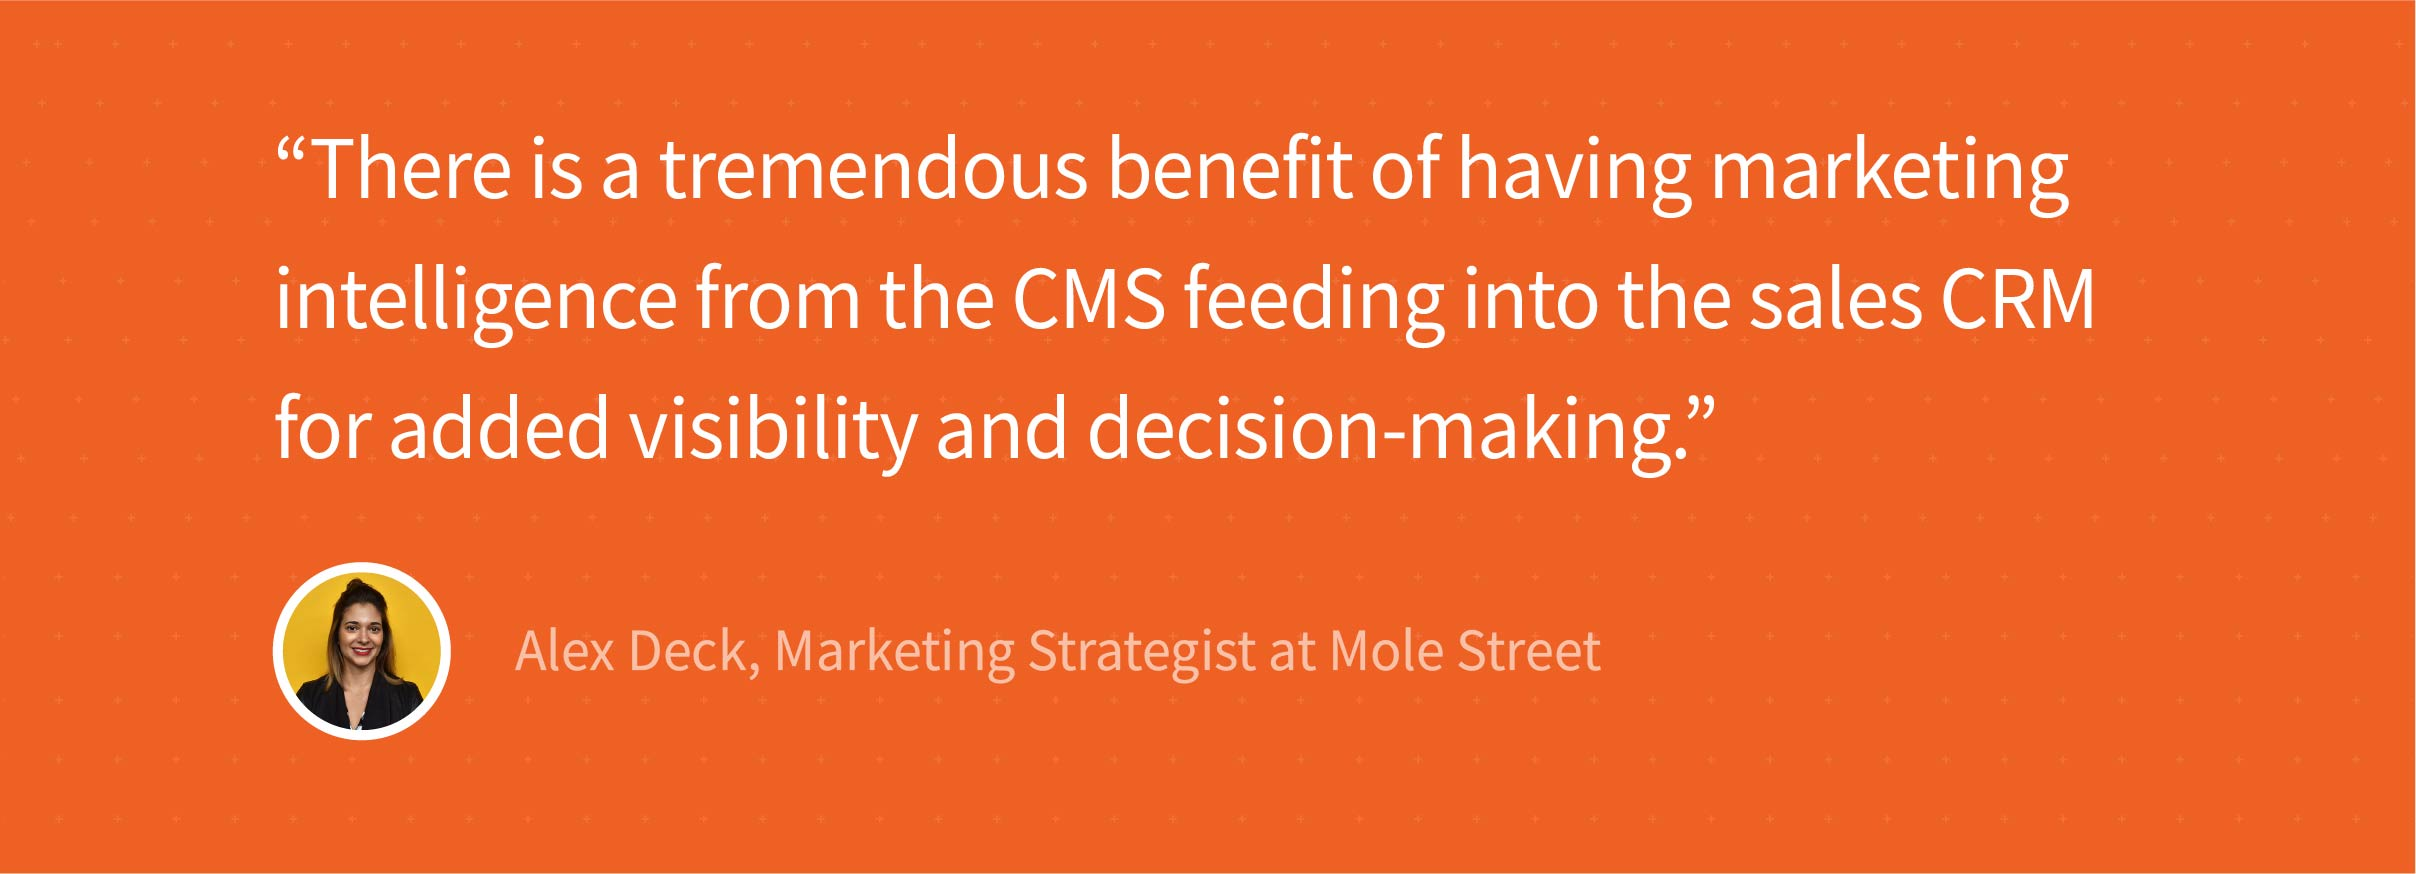 cms-feeding-into-sales-crm